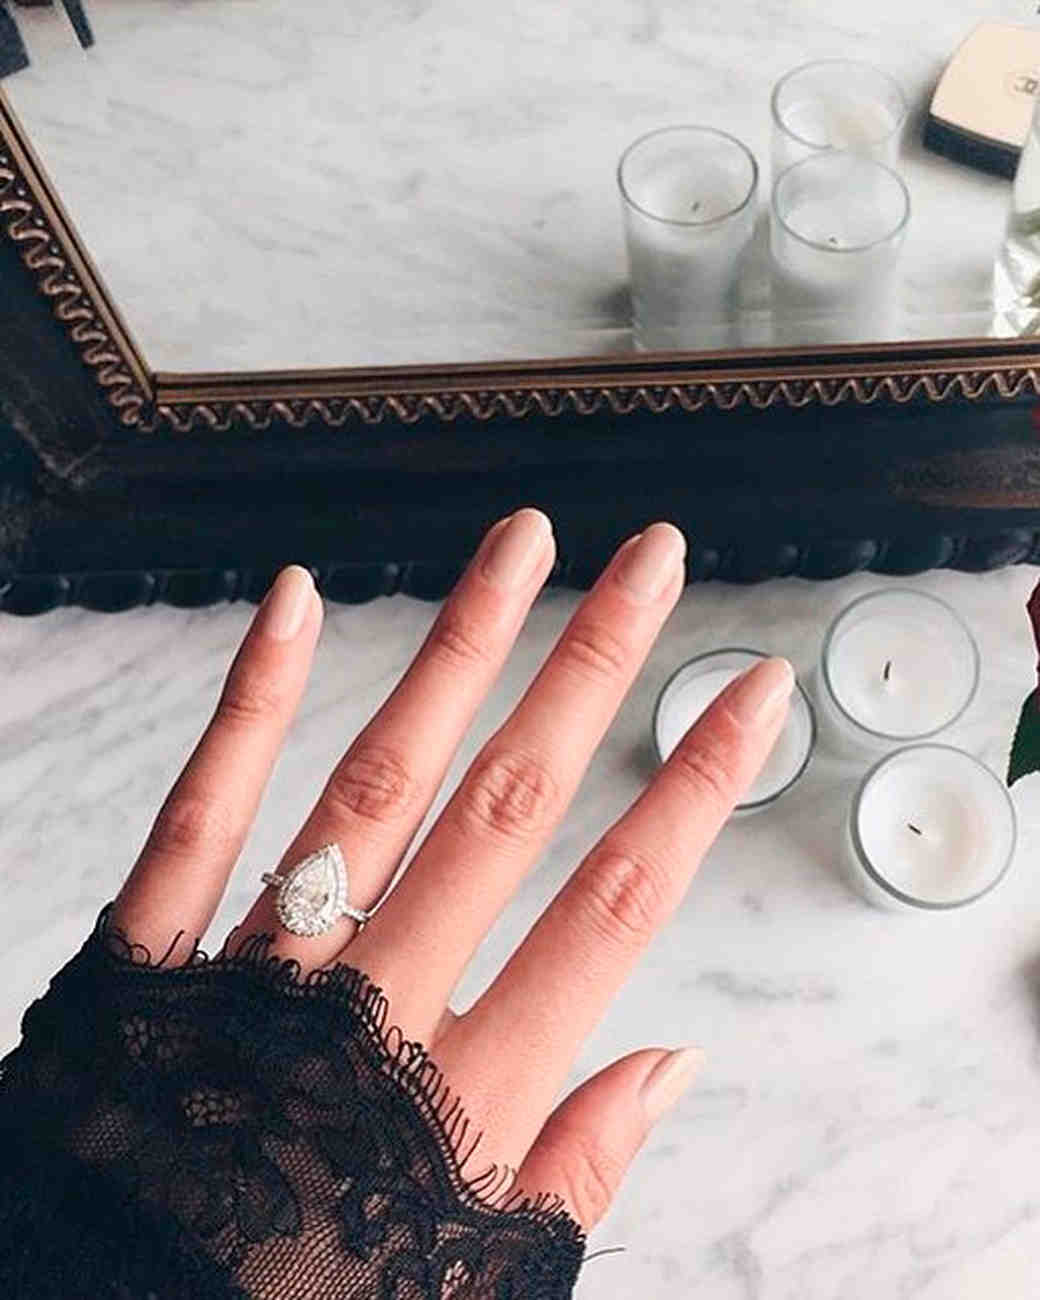 EngagementRing Selfie 101 How to Take the Perfect Photo Martha